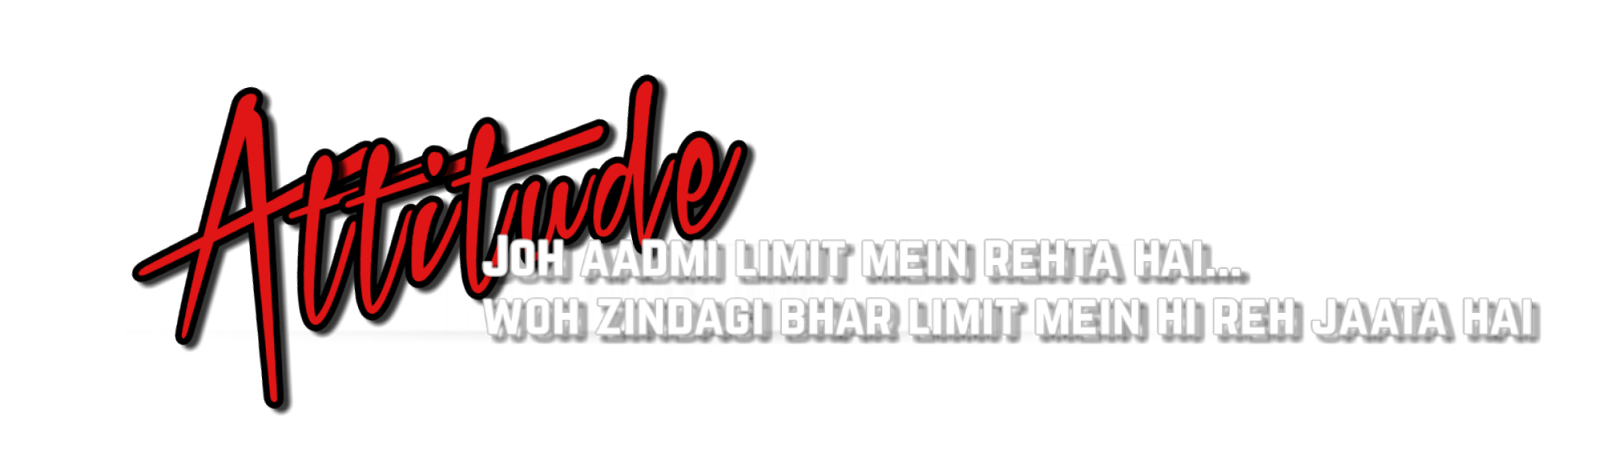 ○ Attitude Text Hd Png.